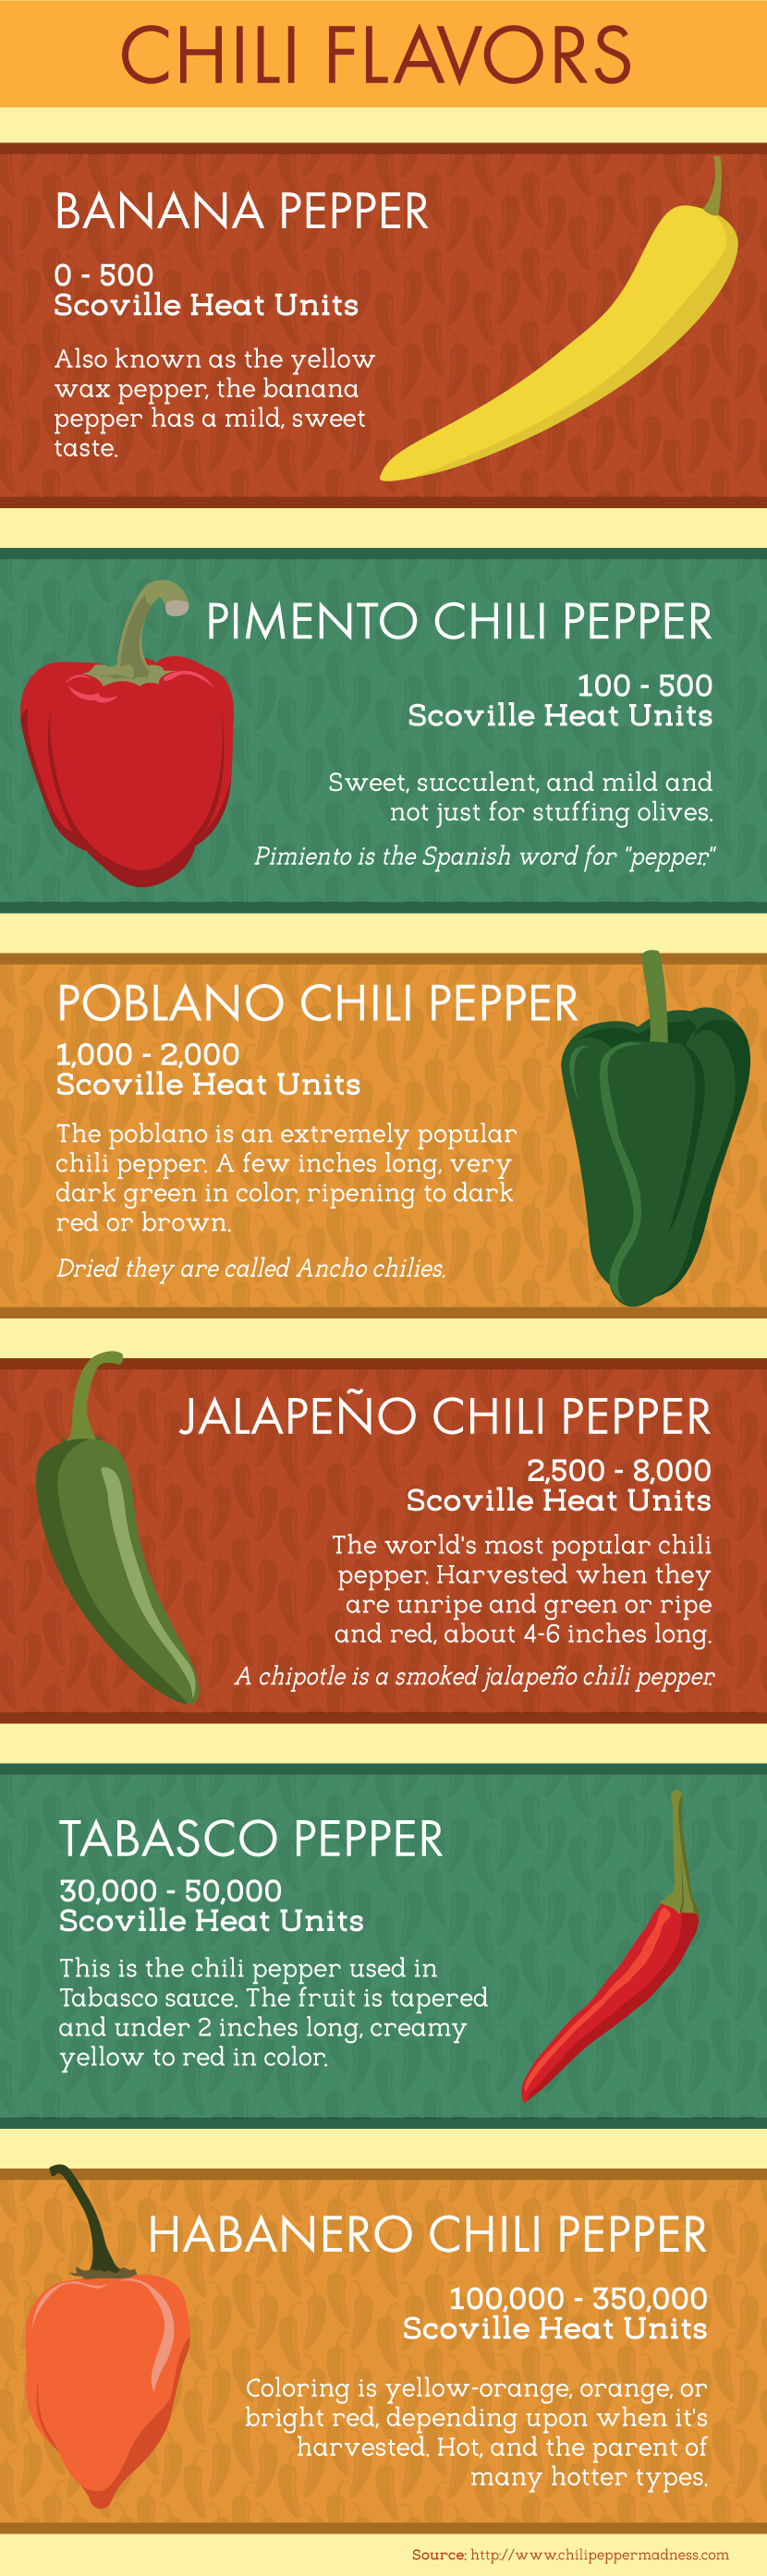 Growing Chilies: Popular Cultivars and Flavors